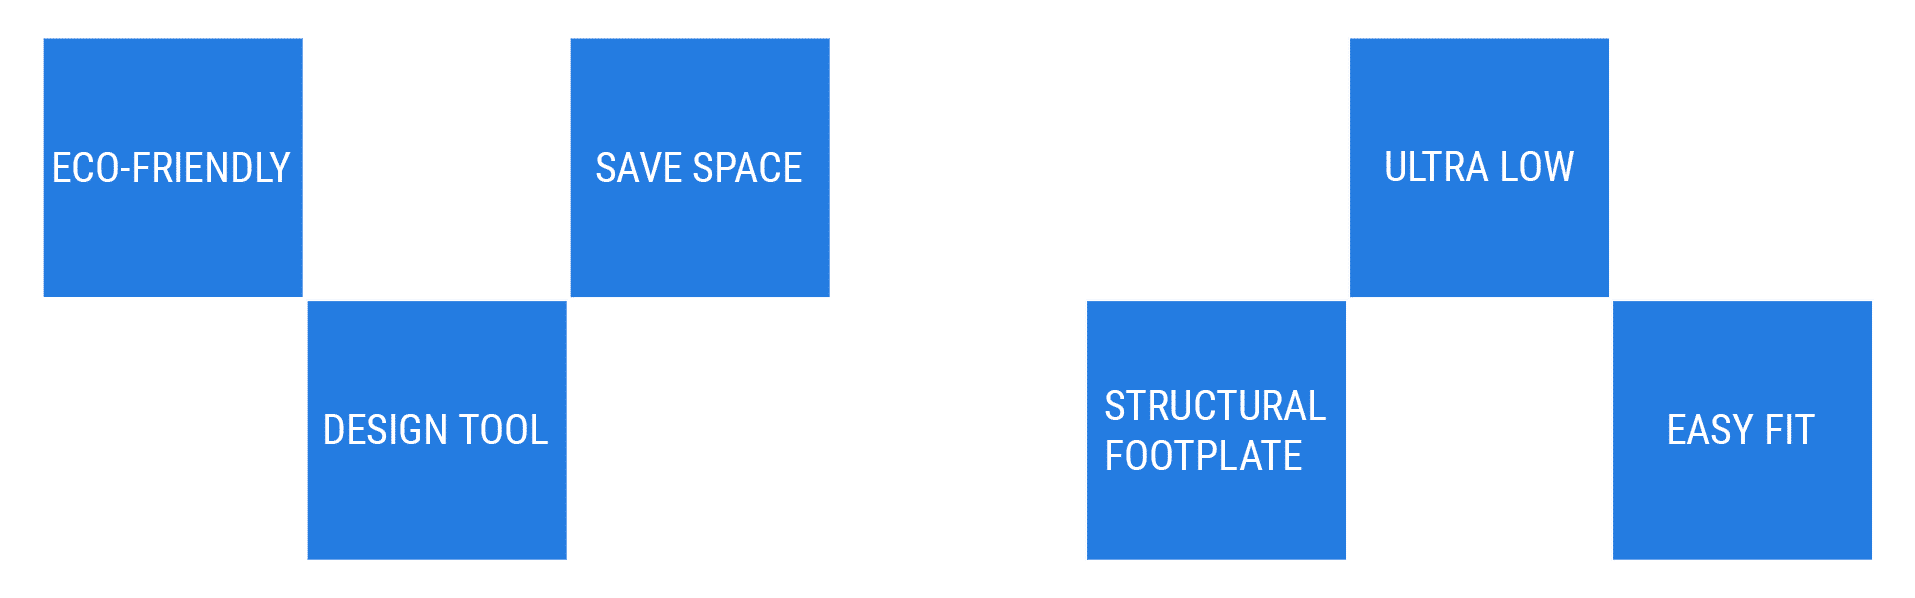 Eco > Design > Save Space > Structural Interface > Adapt > Ultra Low